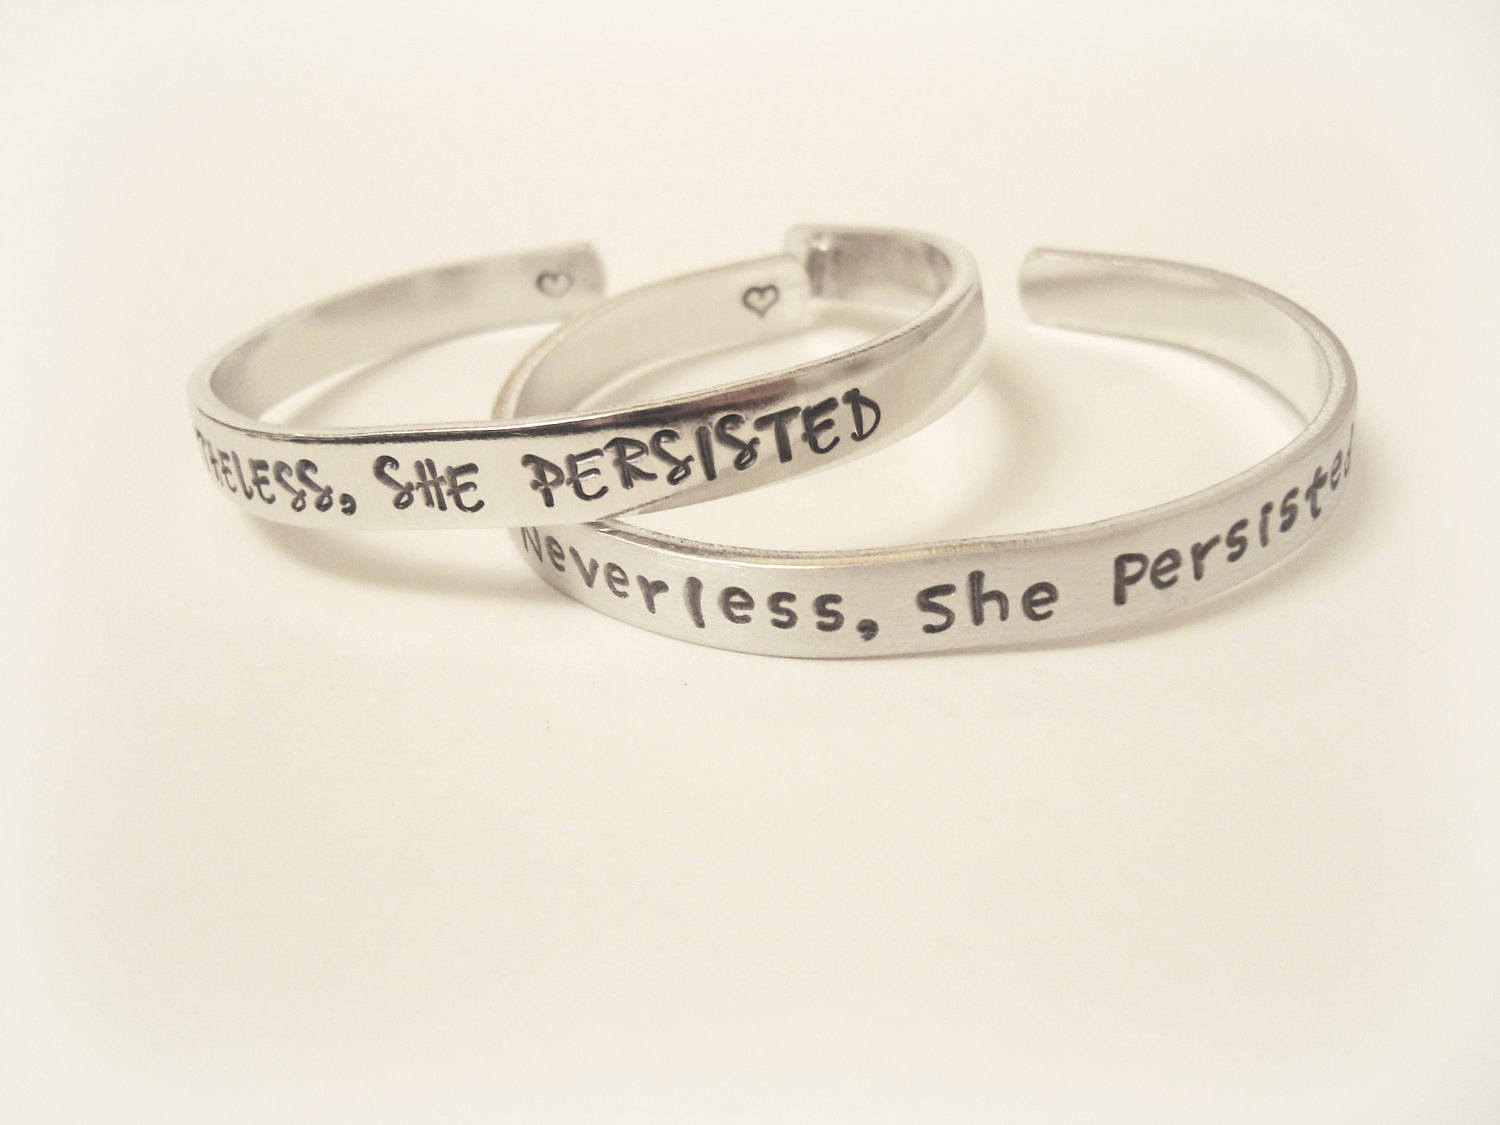 Nevertheless, she persisted hand stamped bracelet personalized one of a kind custom jewelry